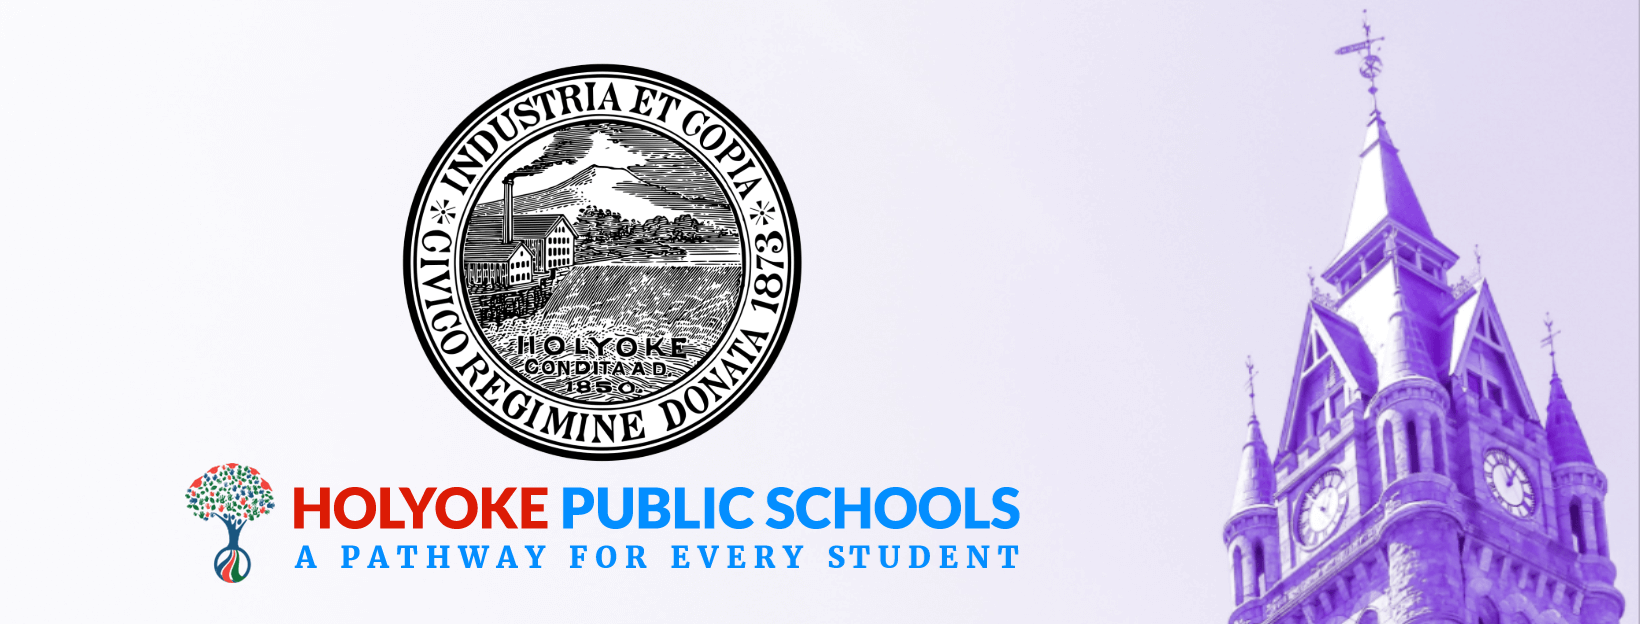 PRESS RELEASE: Official Update on Holyoke Middle Schools Project